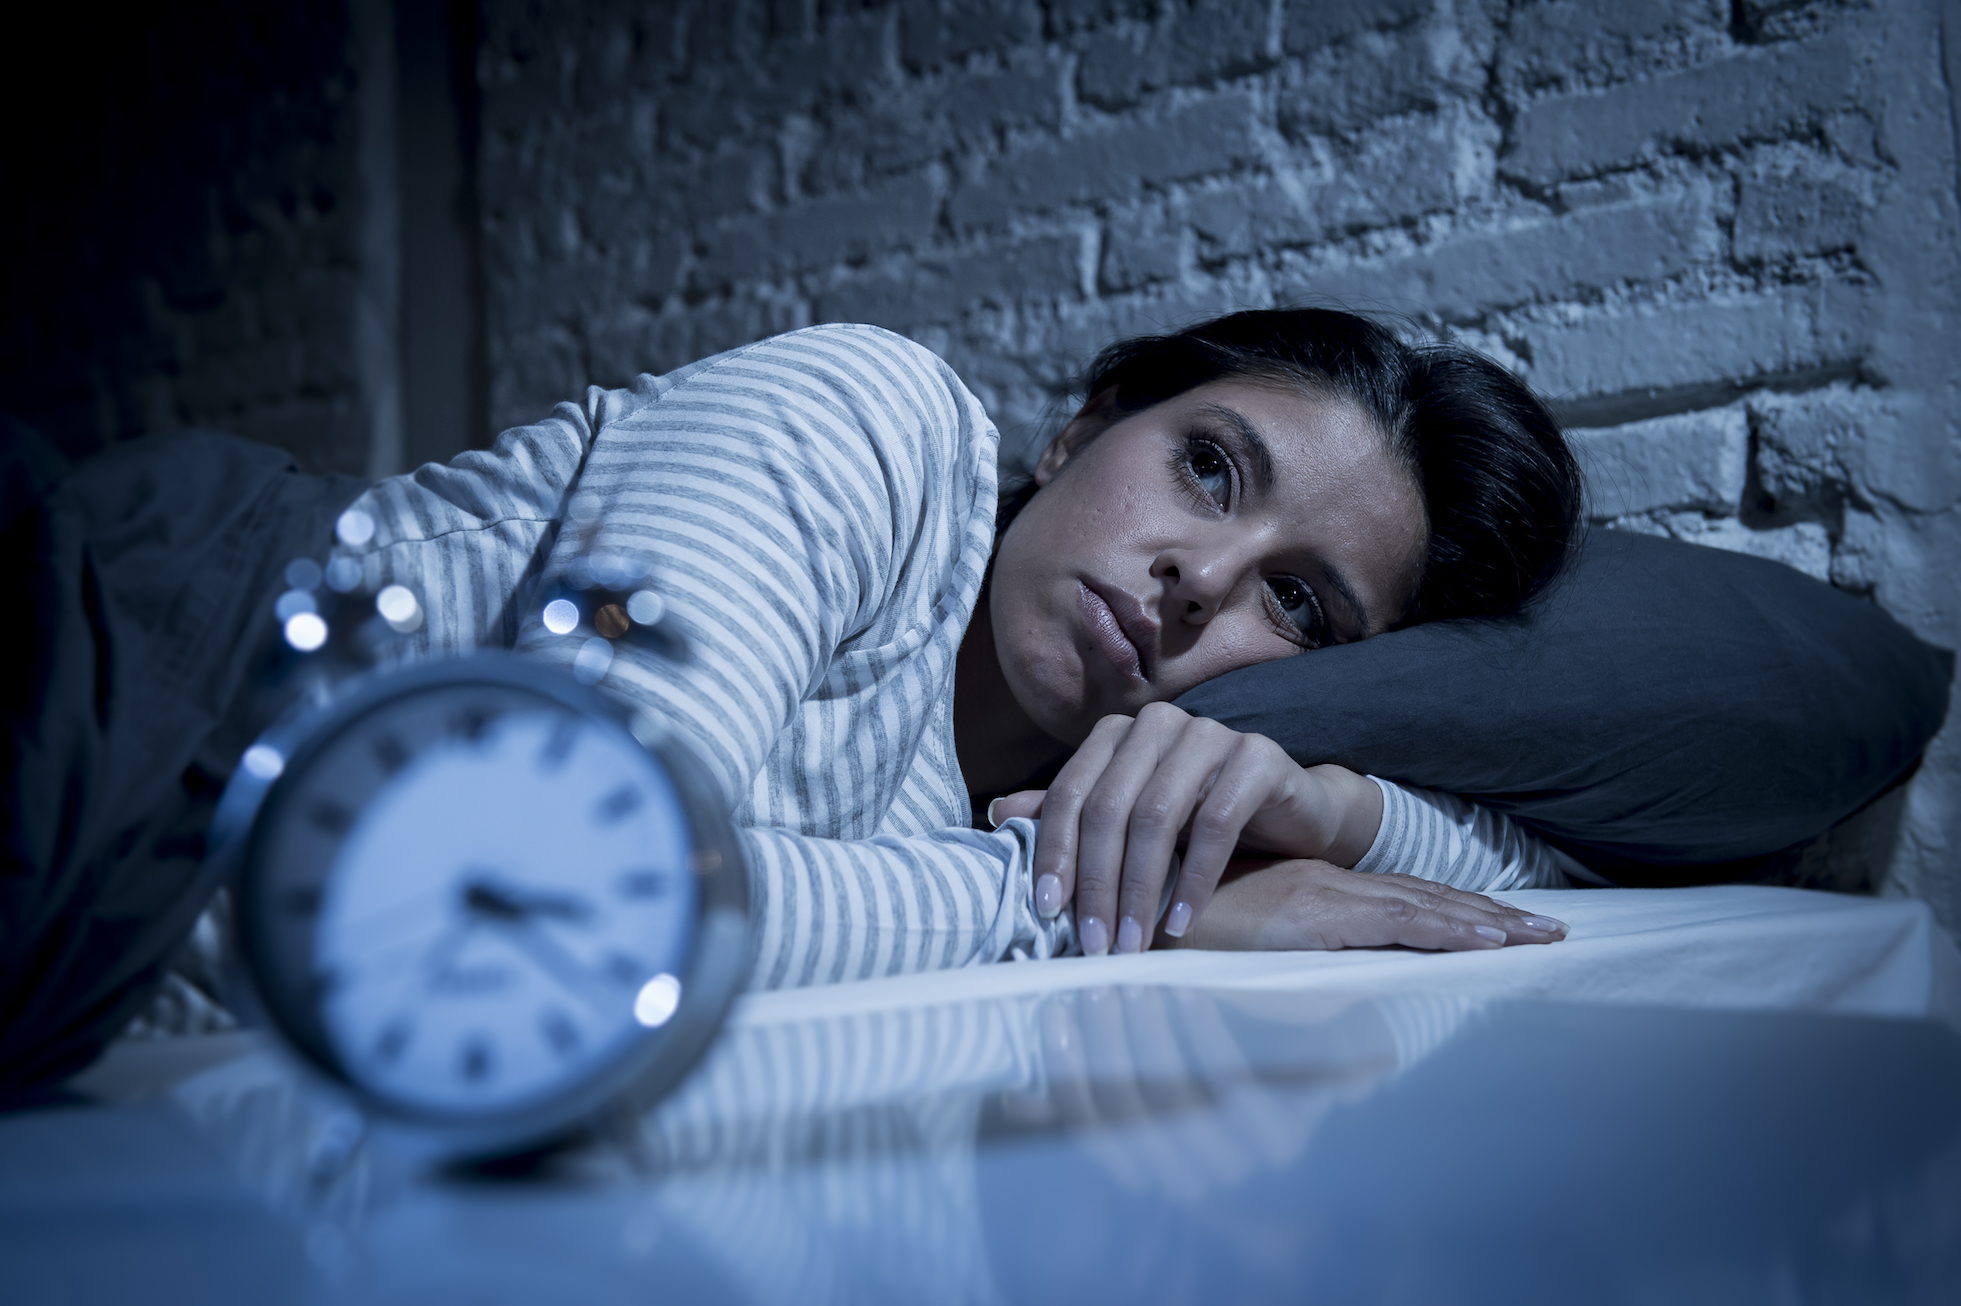 A new study has found that the root of insomnia may actually be in your genes, and that chronic insomnia can increase the risk of diabetes and depression.